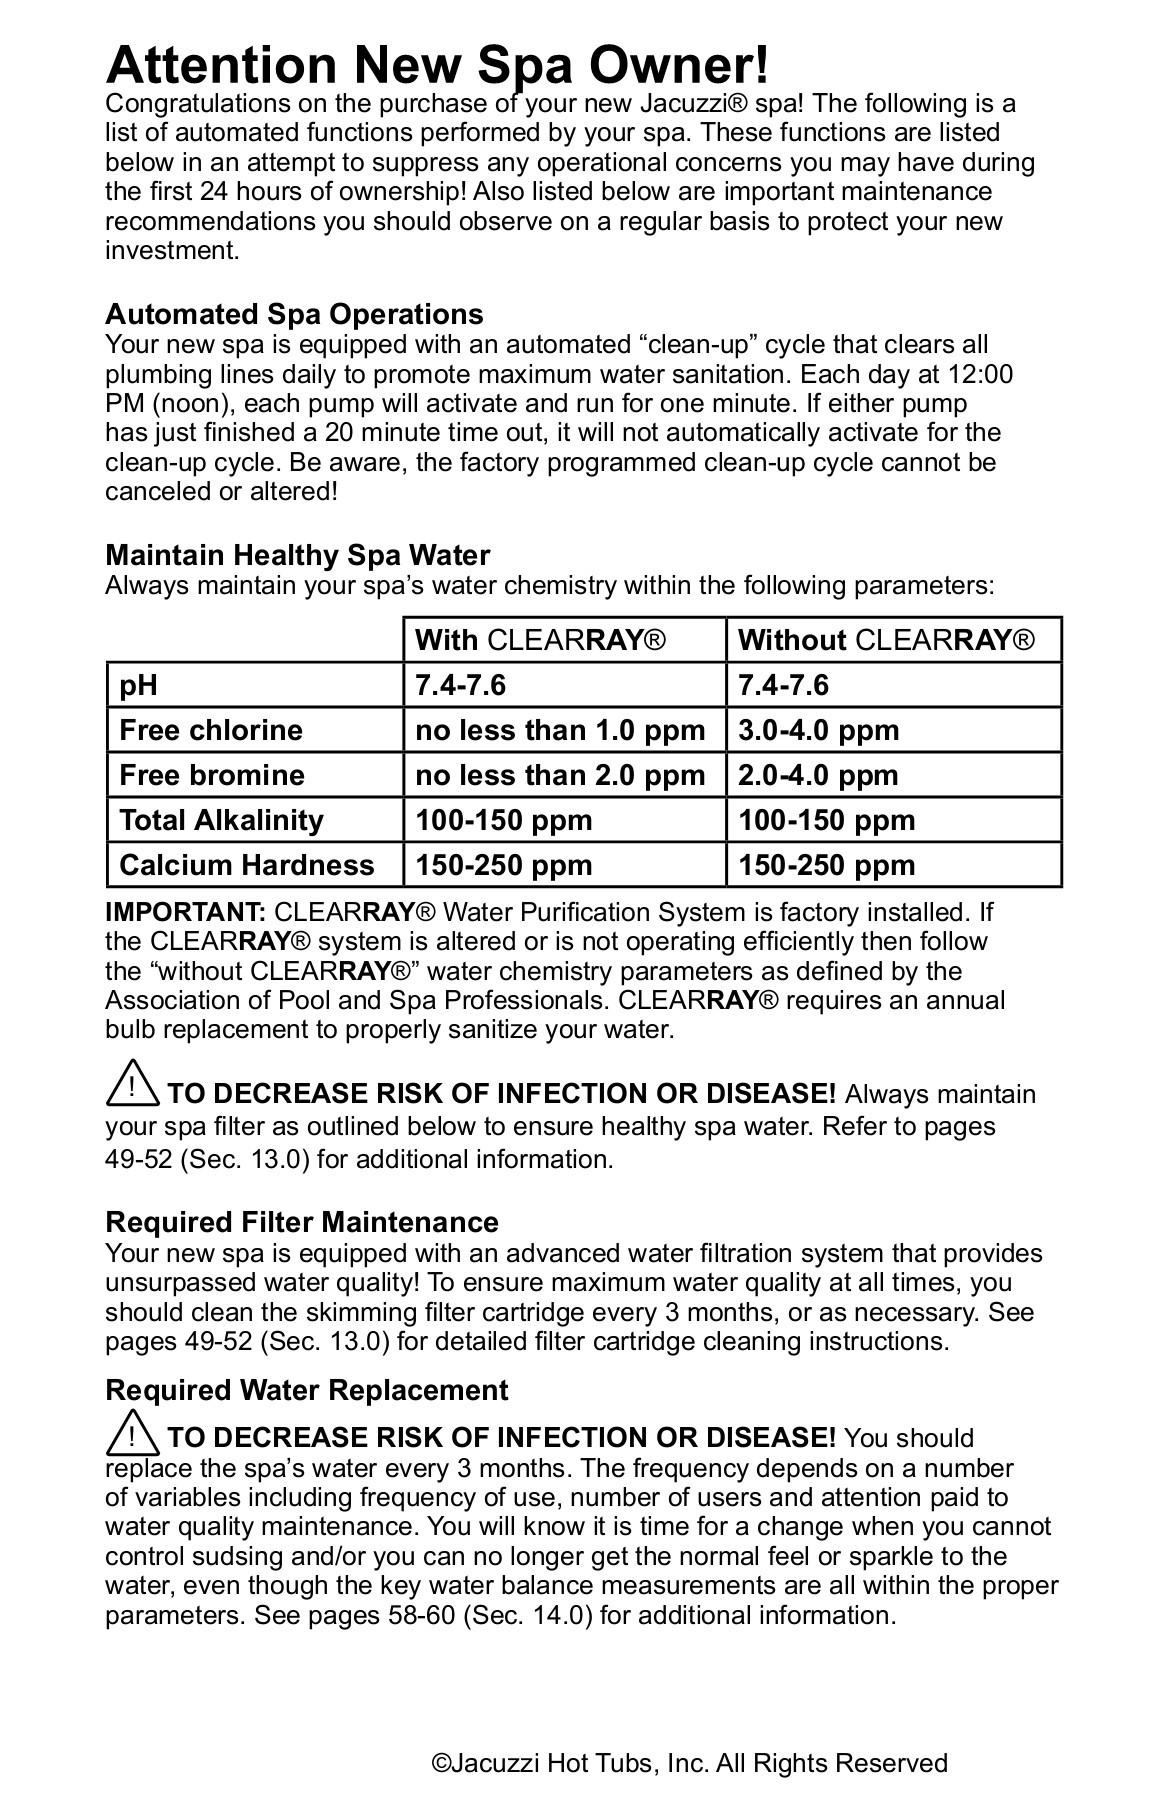 Jacuzzi Pool Filter Manual J 500 Series Owners Manual Jacuzzi In Iowa